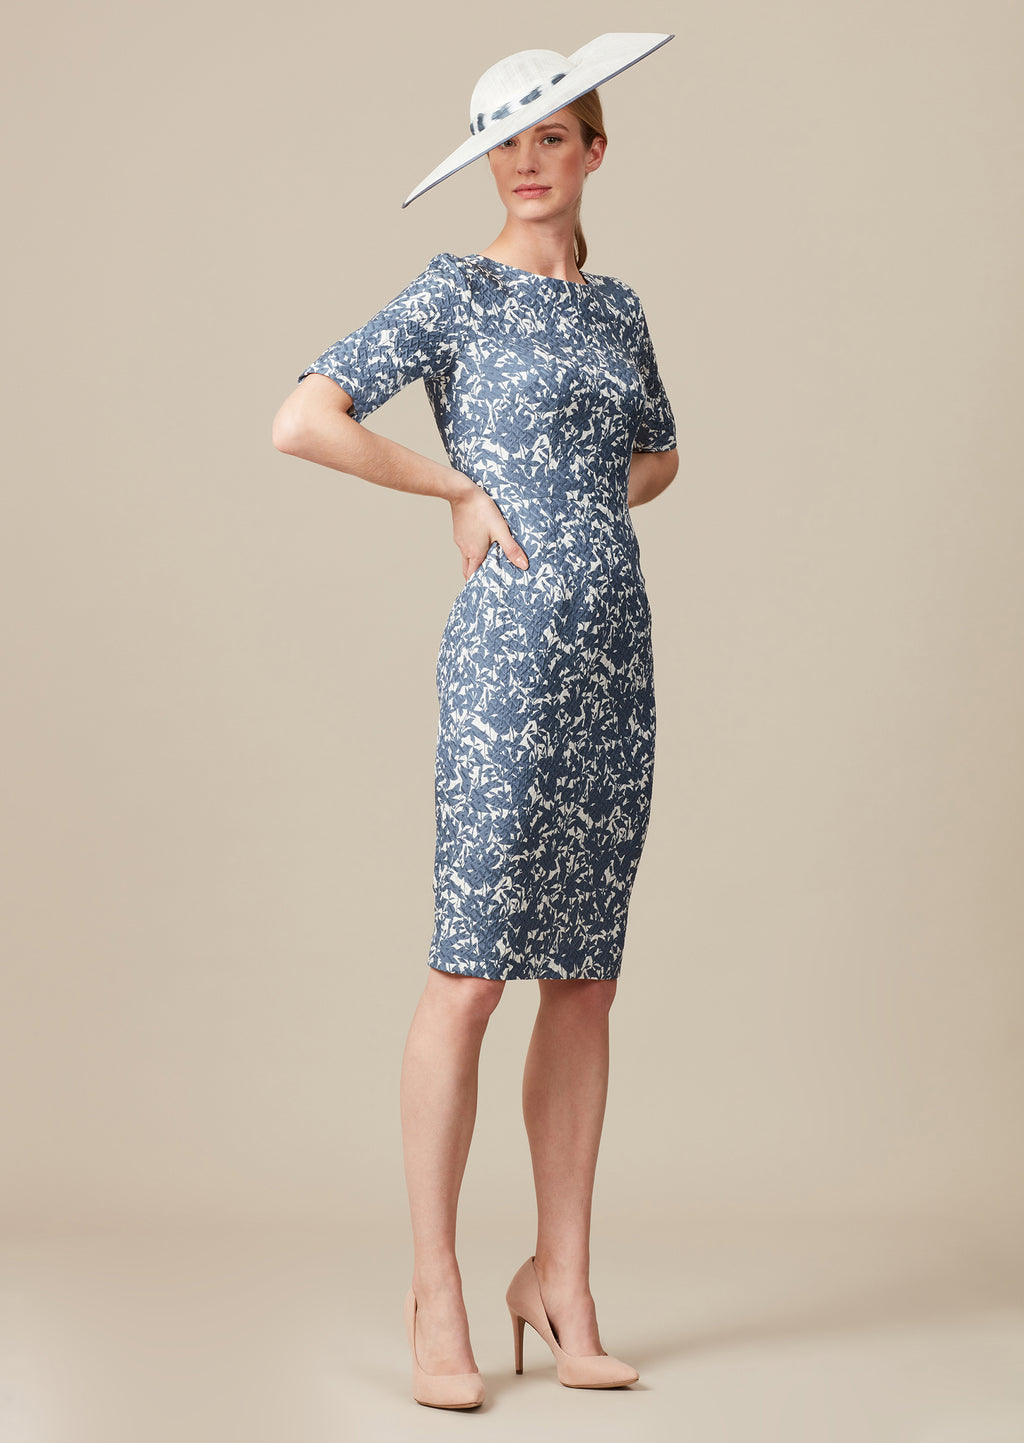 Matelassé knee-length pencil style dress with short sleeves and high neckline for mothers of the bride